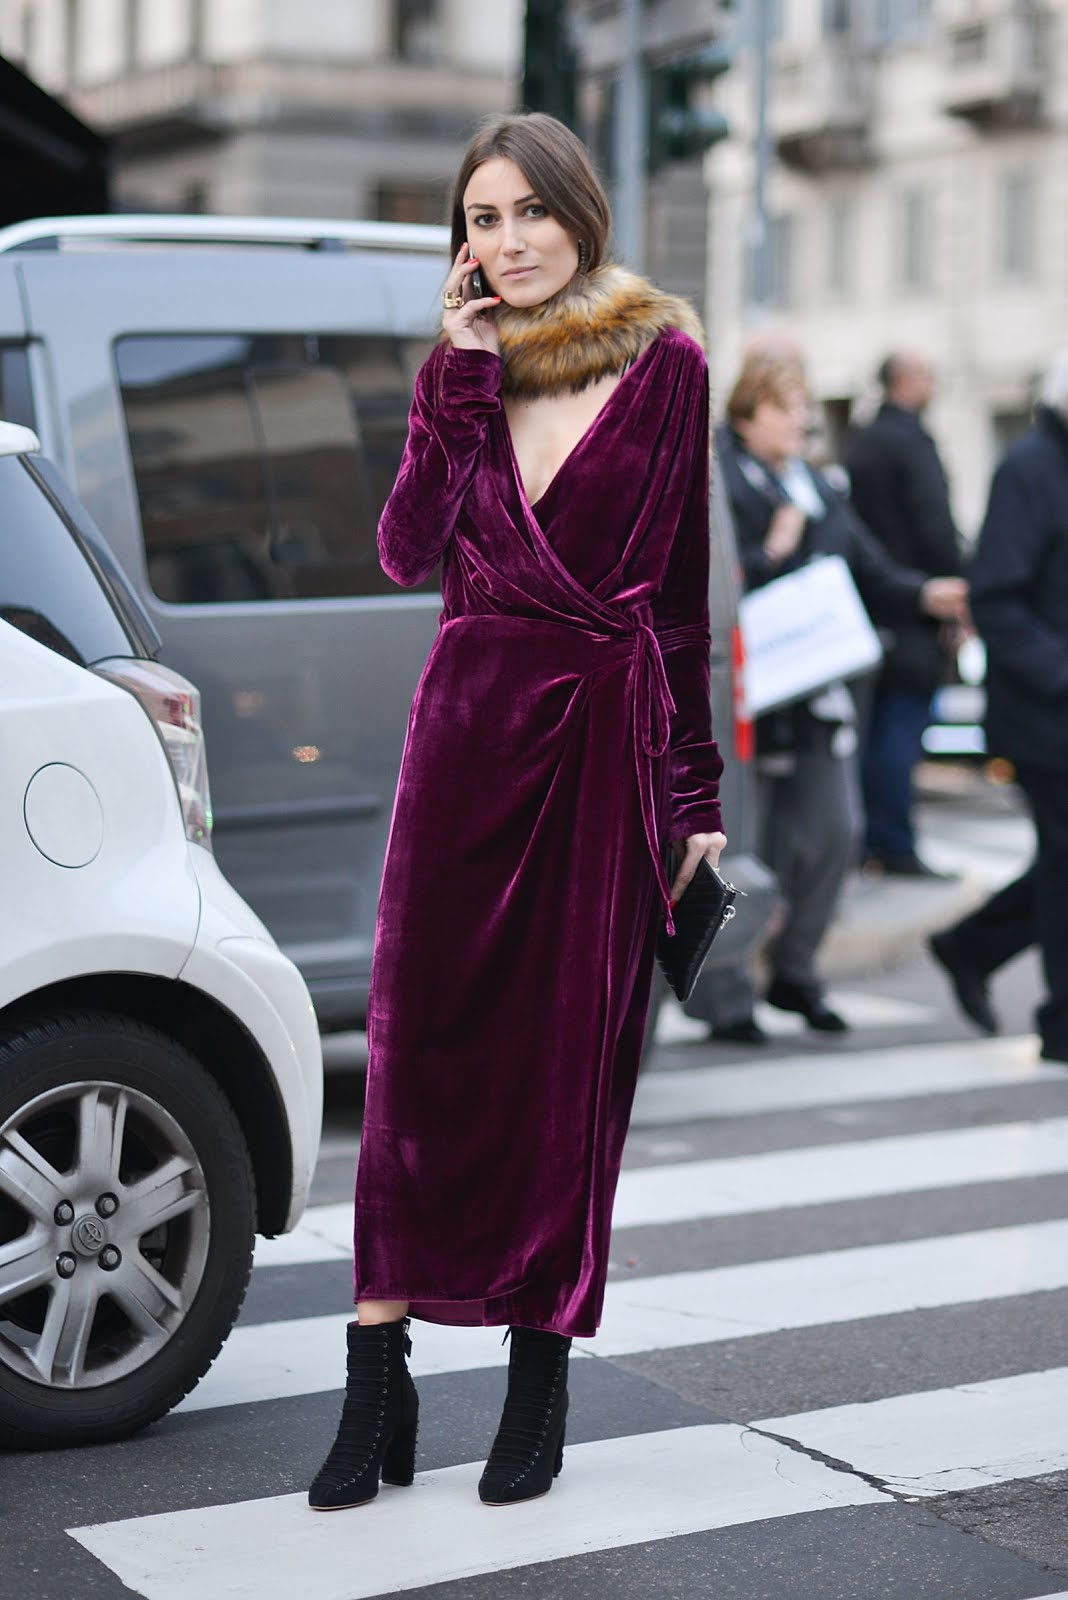 Velvet the fashion trend for F/W 2016